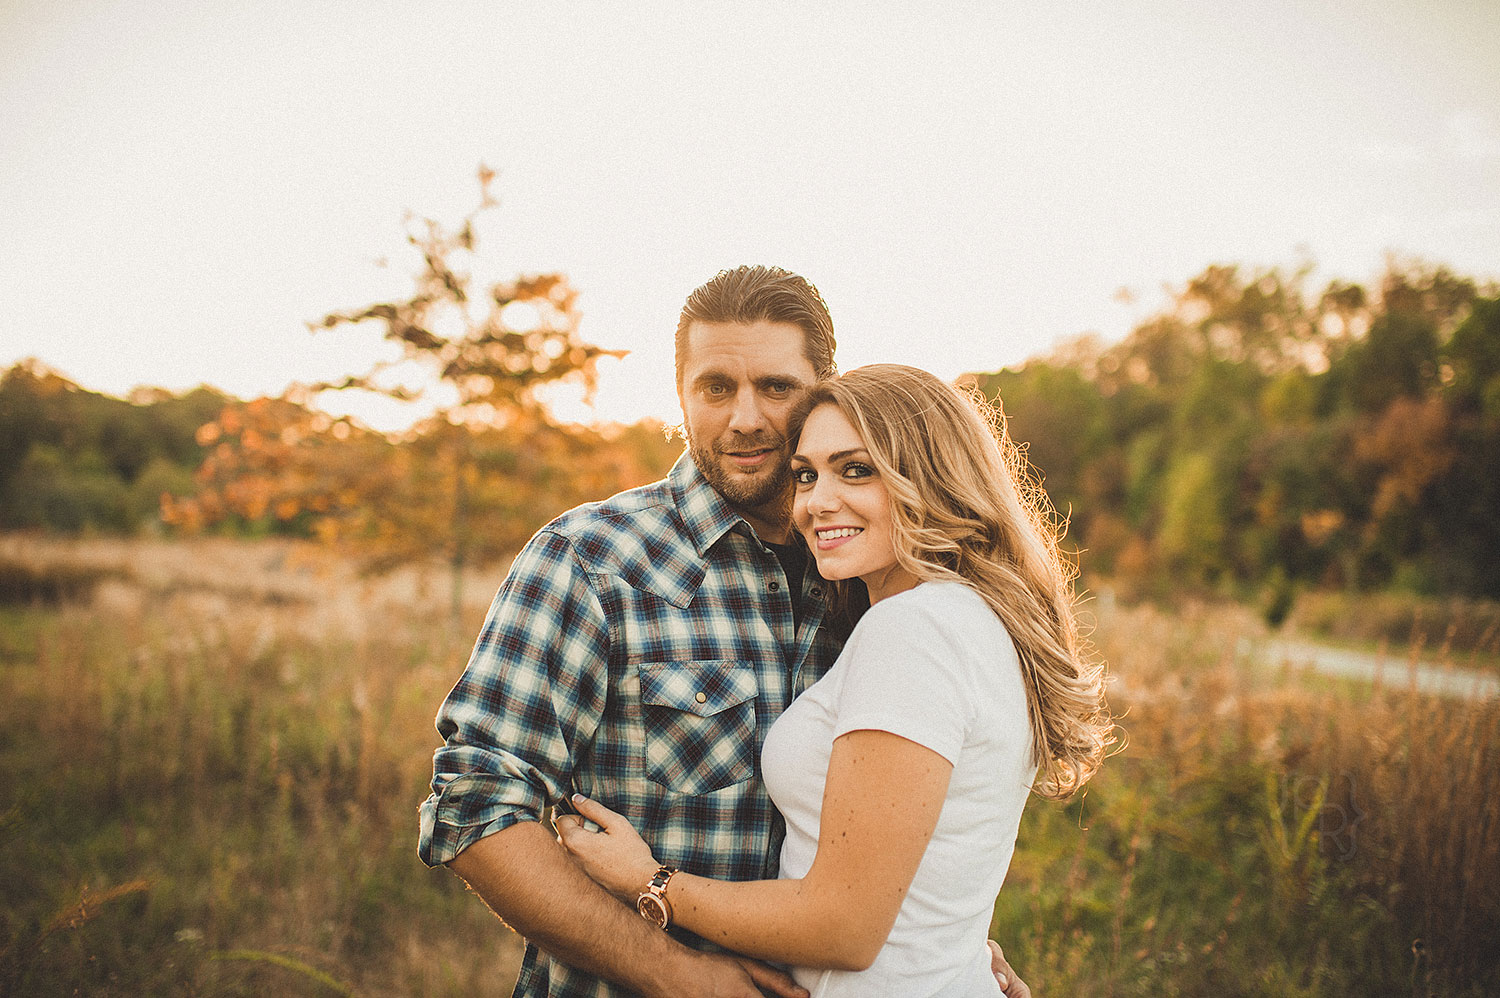 pat-robinson-photography-wilmington-engagement-session-13.jpg